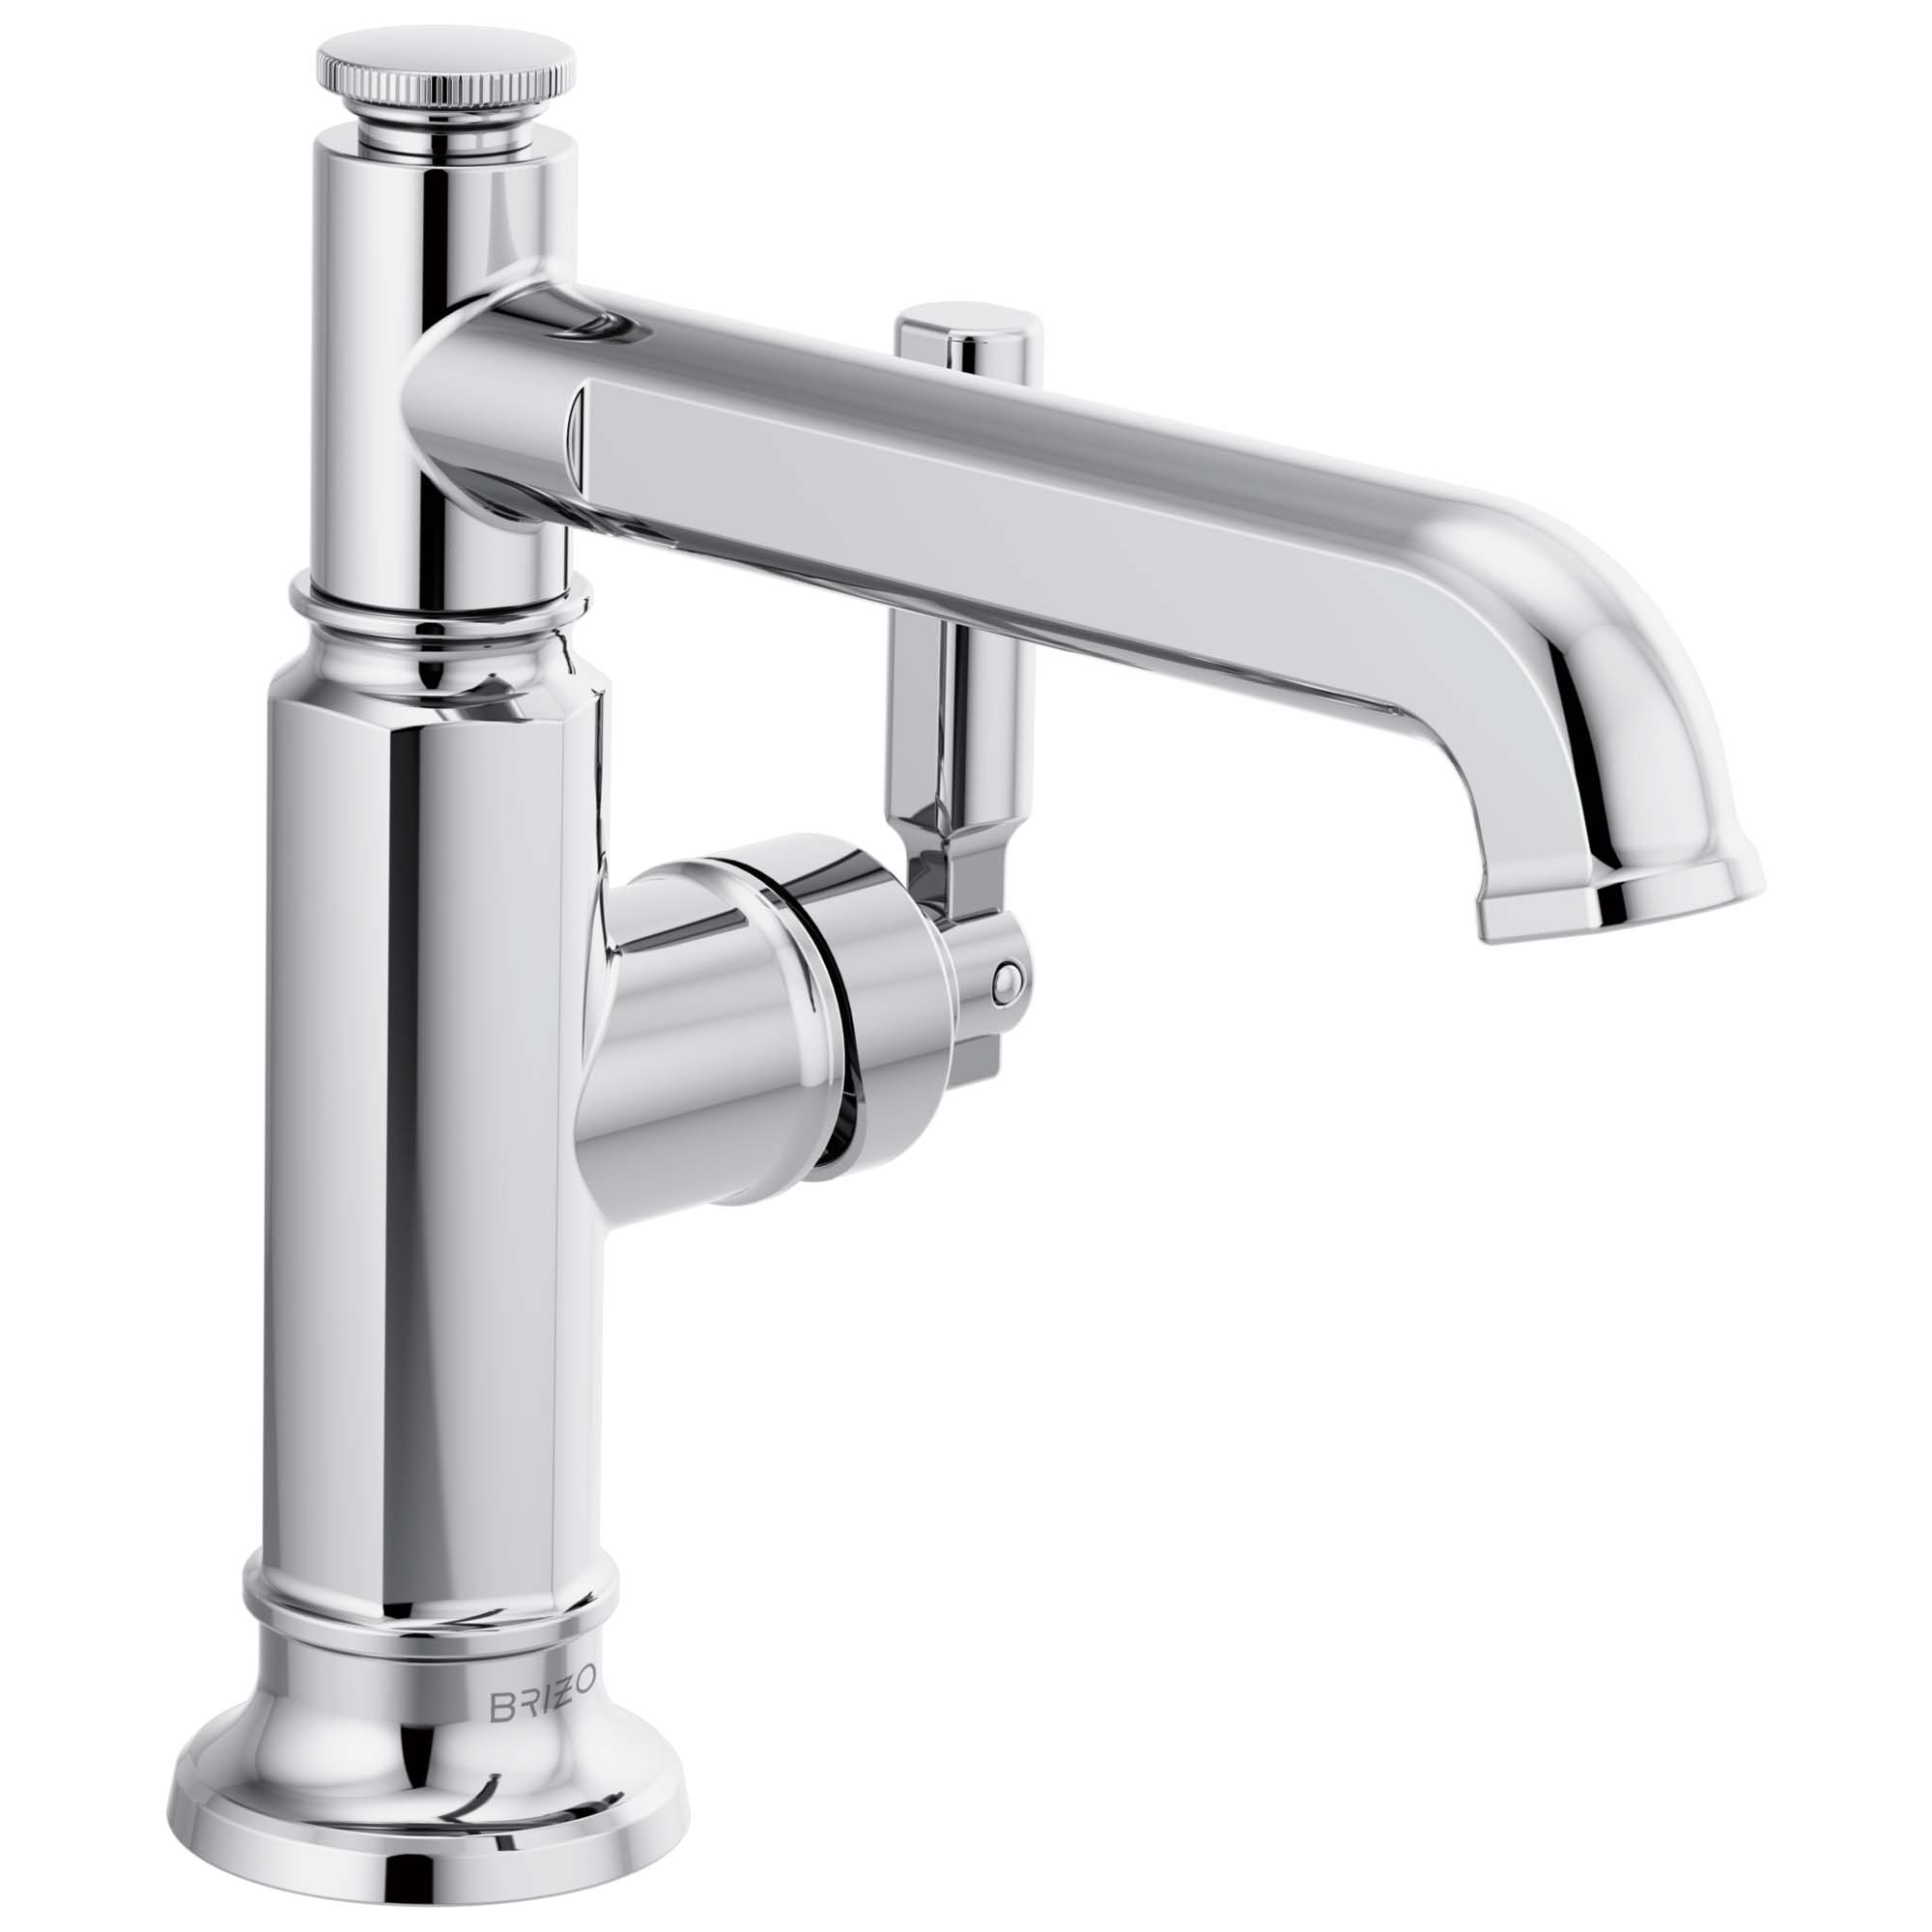 Brizo 65076LF-PC Brizo Invari: Single-Handle Lavatory Faucet - Chrome